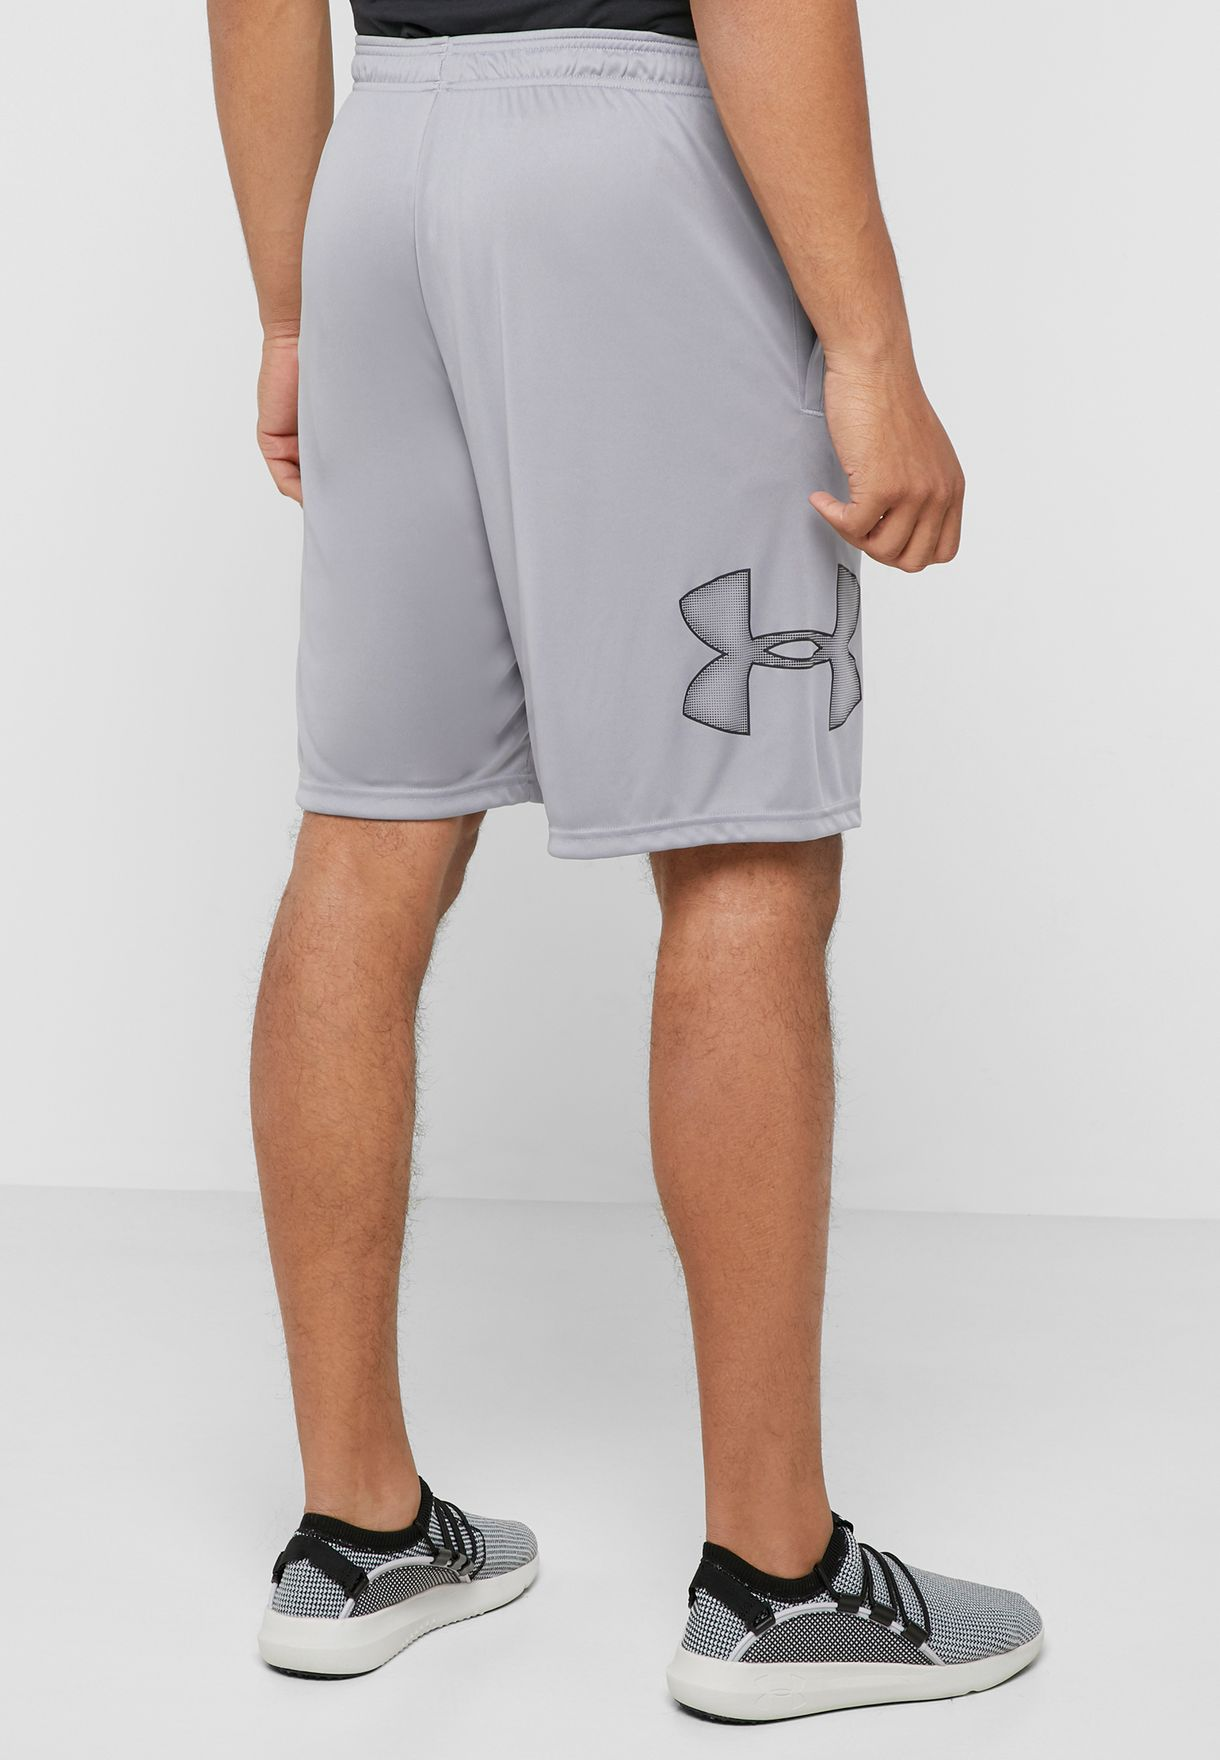 Tech Graphic Shorts